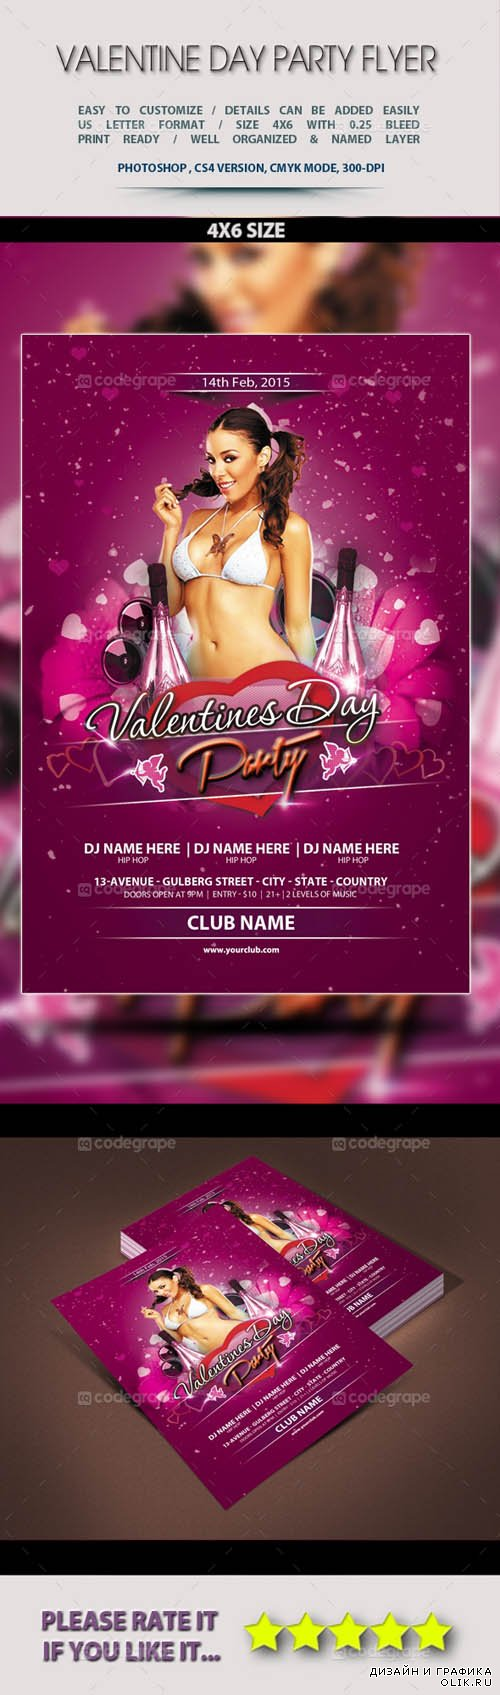 PSD - Valentine Day Party Flyer